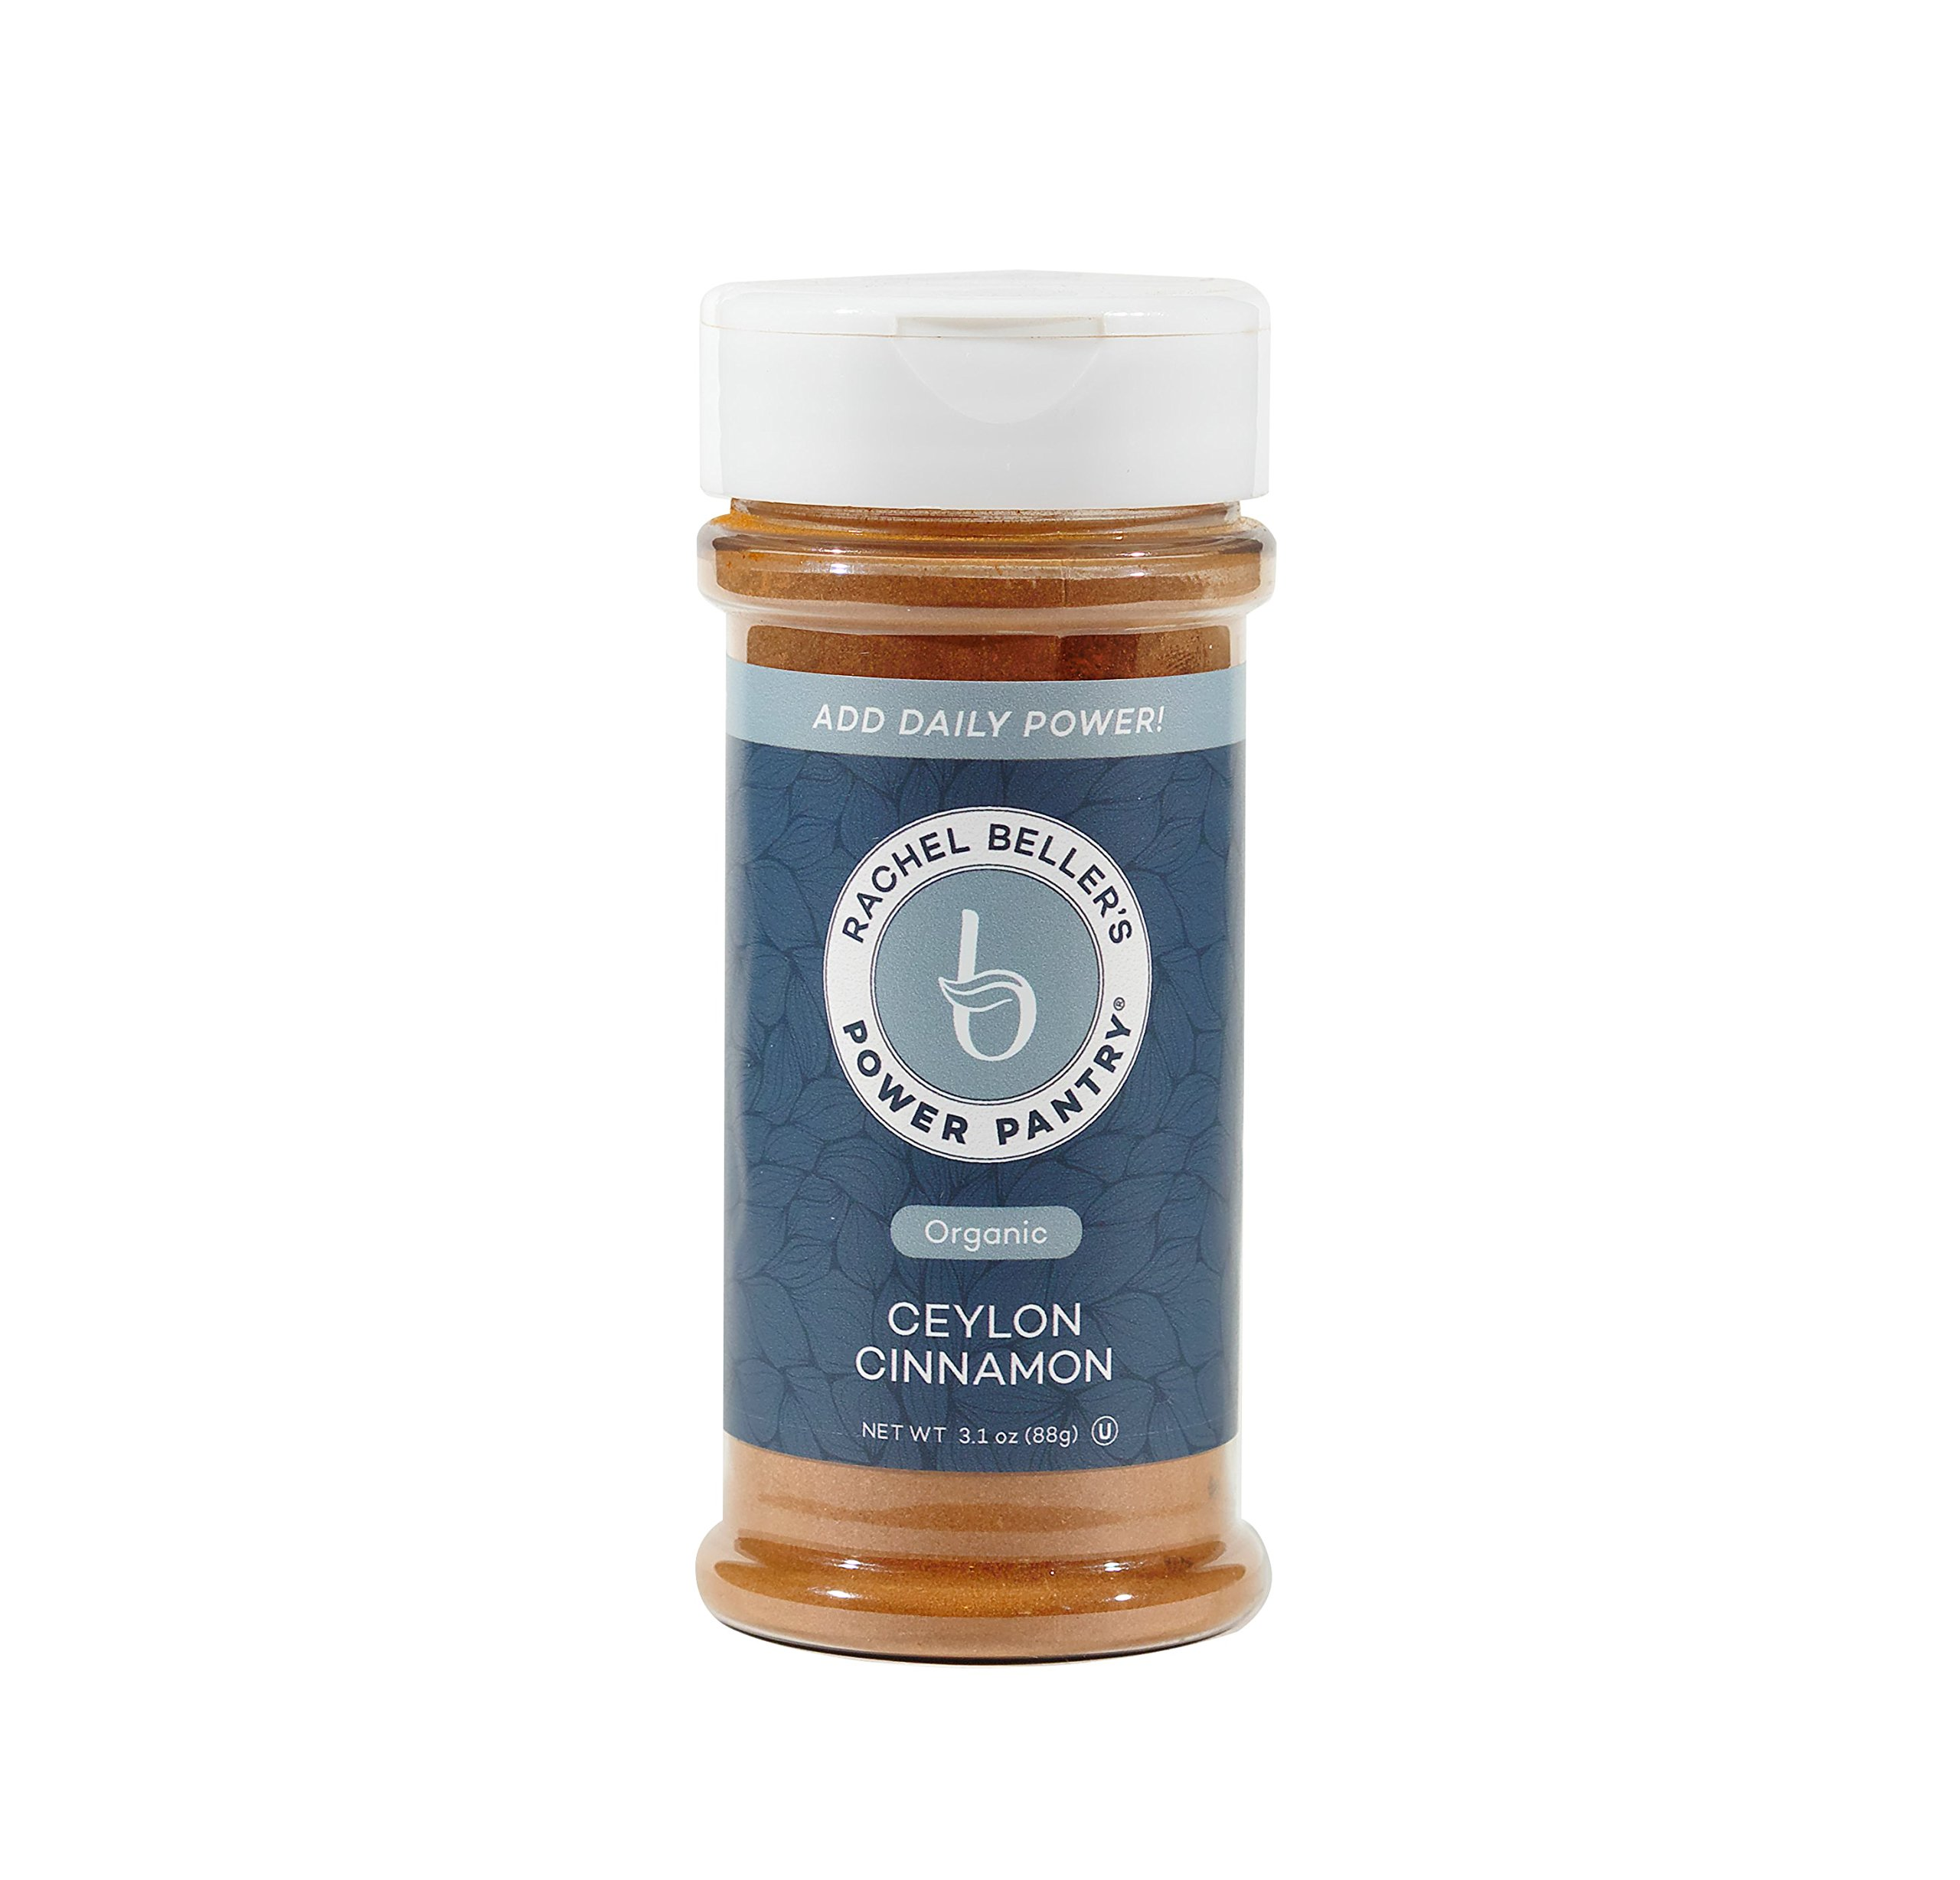 Rachel Beller's Power Pantry Ceylon Cinnamon - Organic Ceylon cinnamon spice, 3.1 ounce by Rachel Beller's Power Pantry (Image #1)